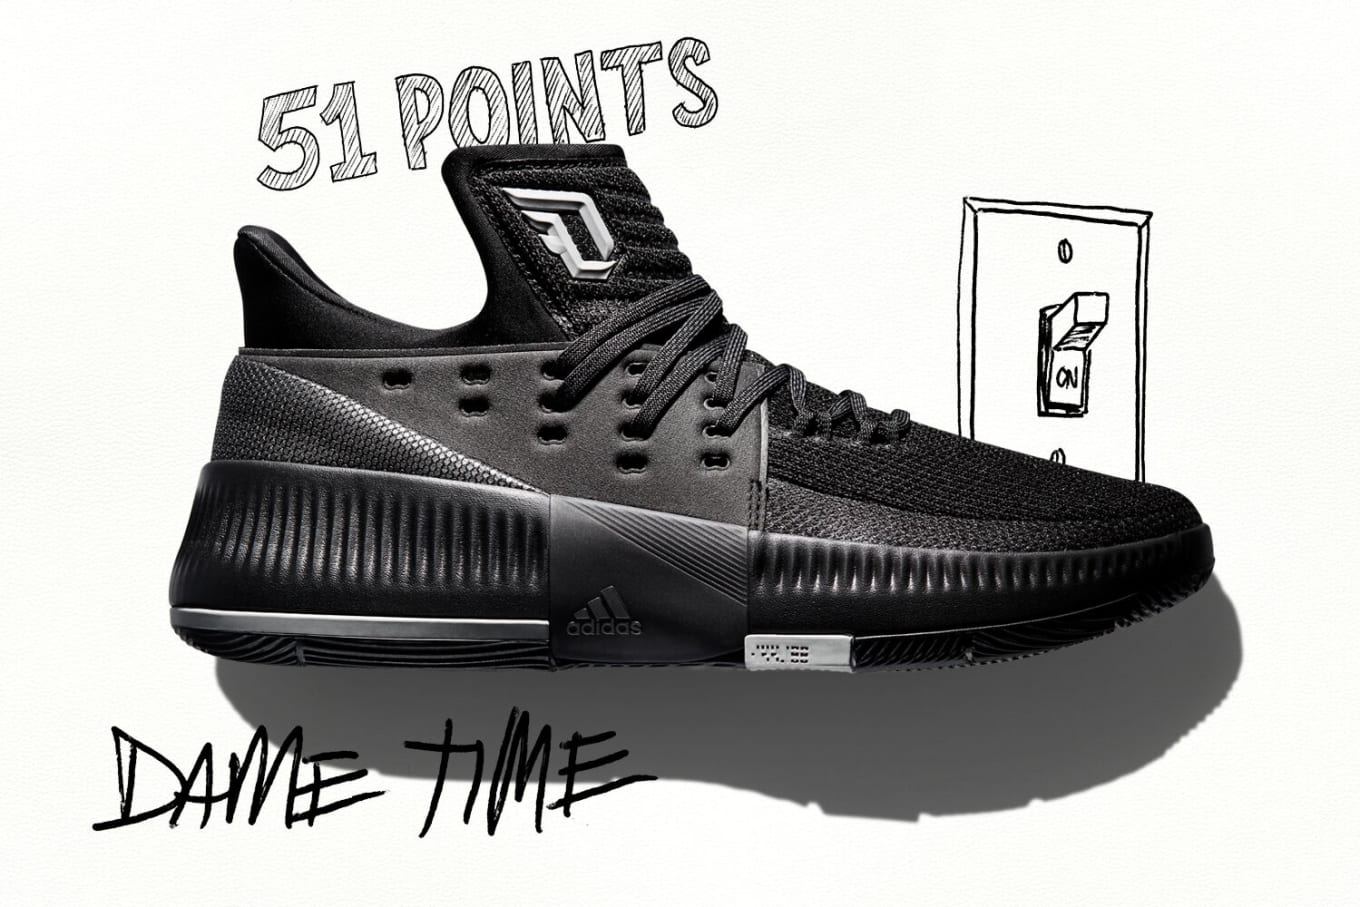 reputable site 619be 2ea1b Dame Lillards Clutch Shots Inspire Latest Adidas Sneaker. Release details  for the